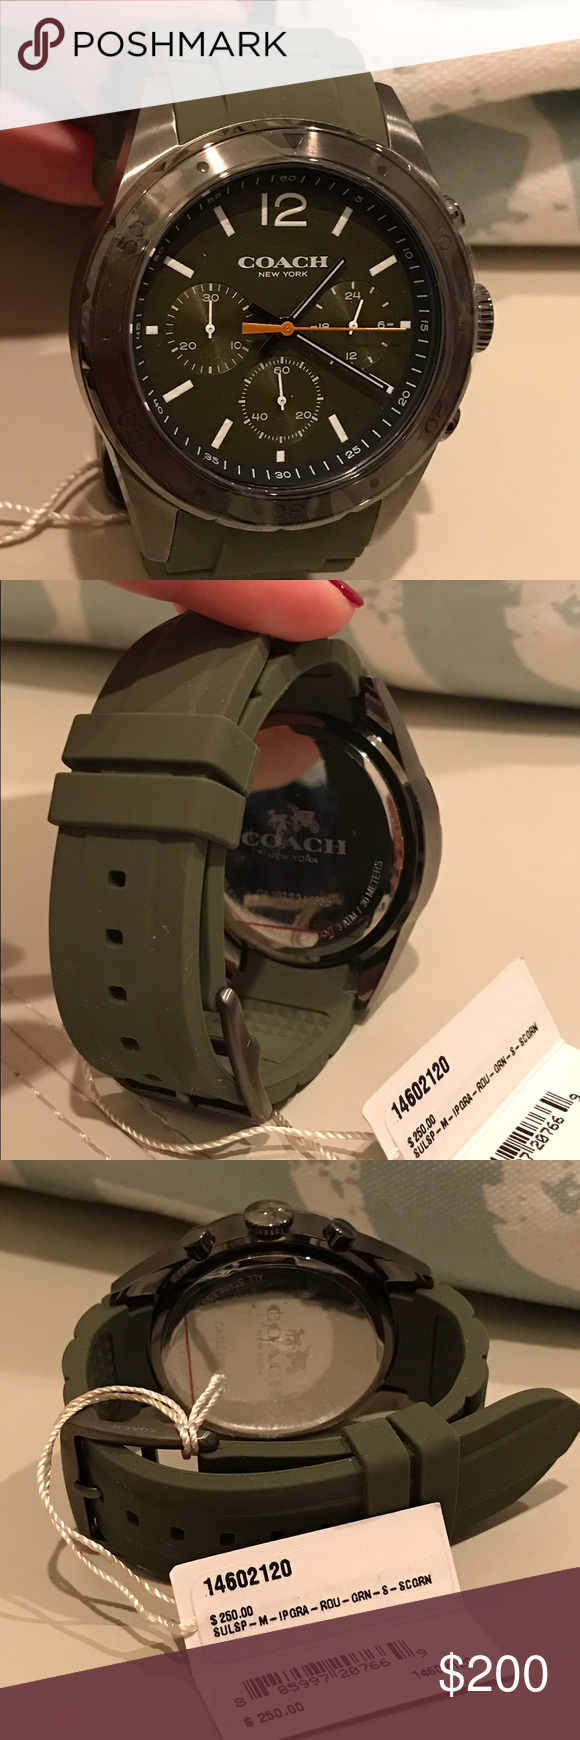 COACH Green Chronograph Watch Brand new Coach men's watch. Metal Hardware with a rubber strap. Classy and sporty at the same time. Color is military green. Protective plastics still in place. Never been used. Coach Accessories Watches